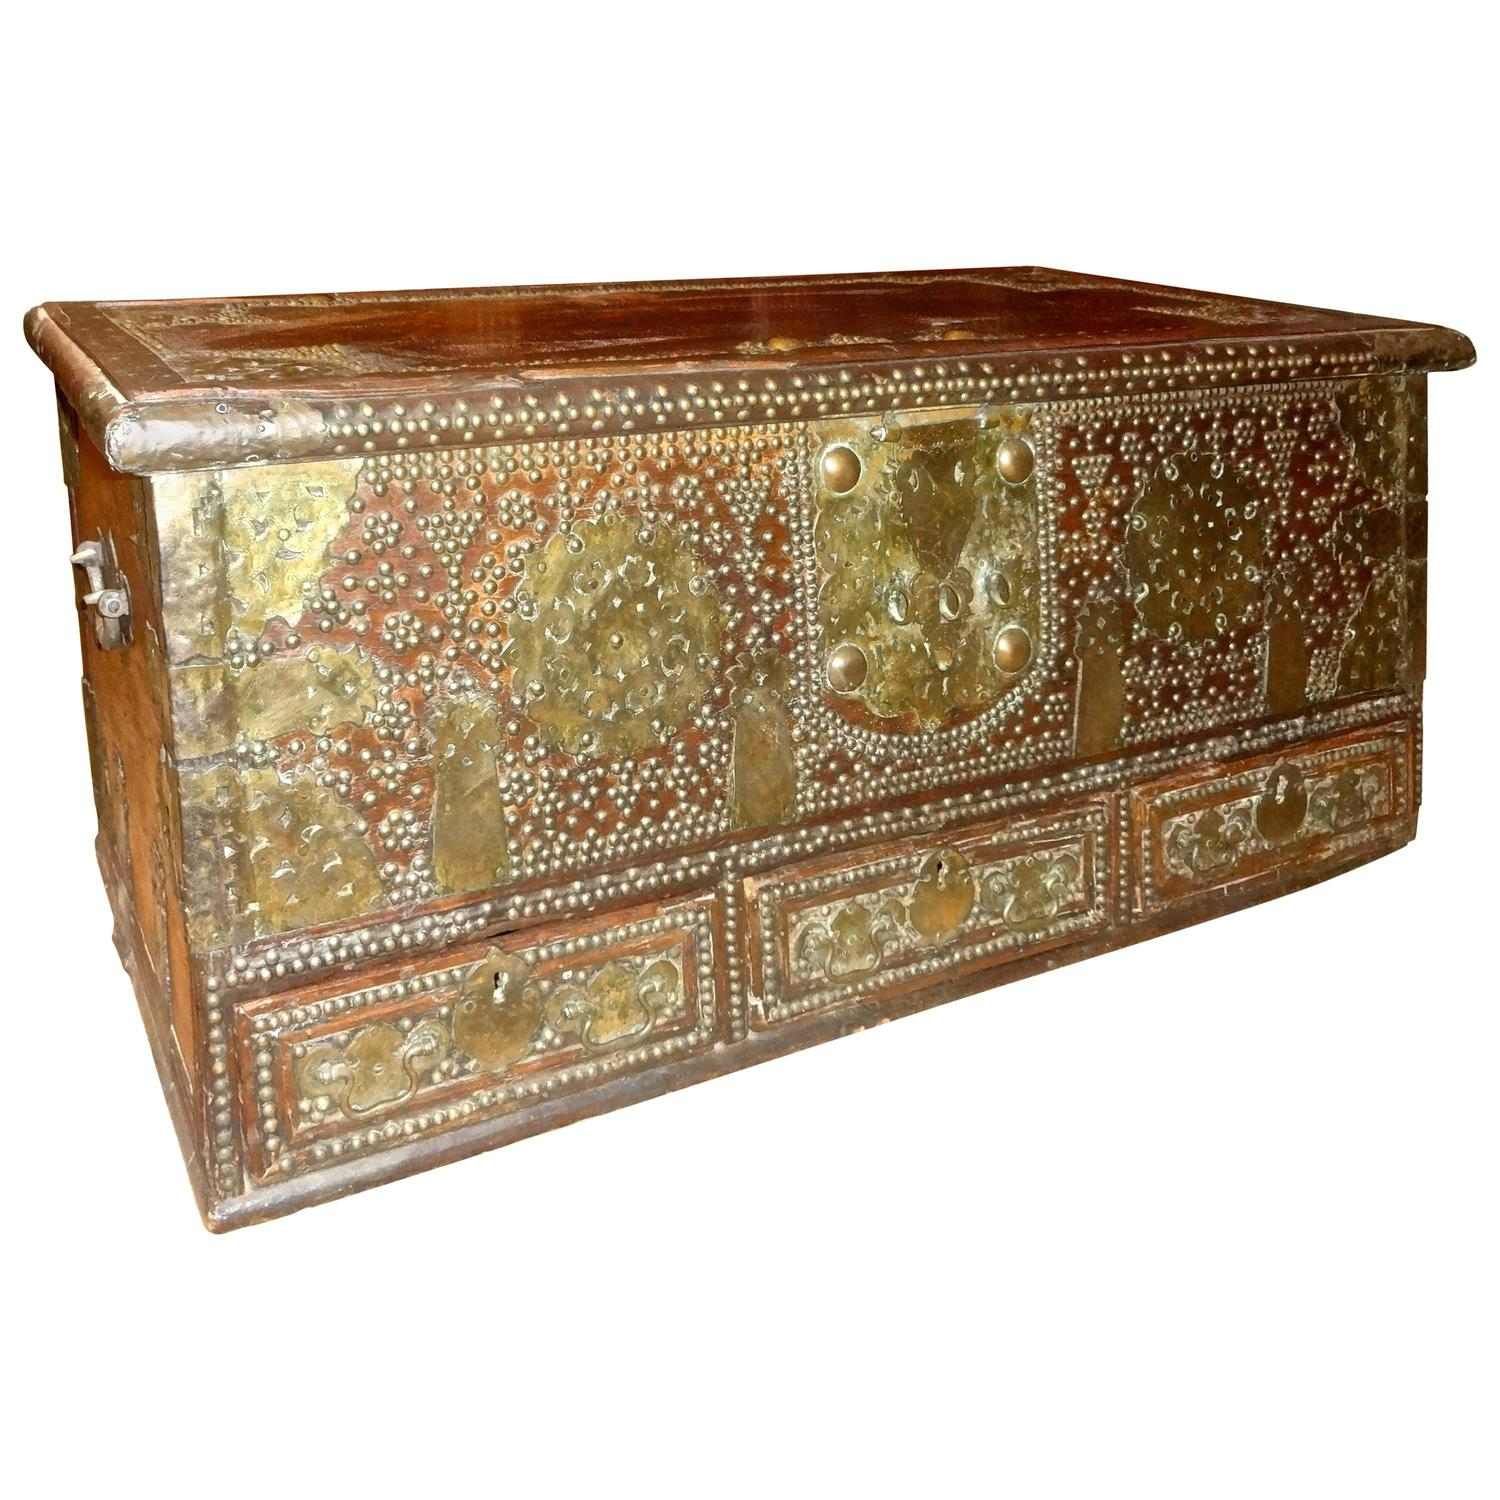 Kuwaiti Chest For Sale At 1stdibs